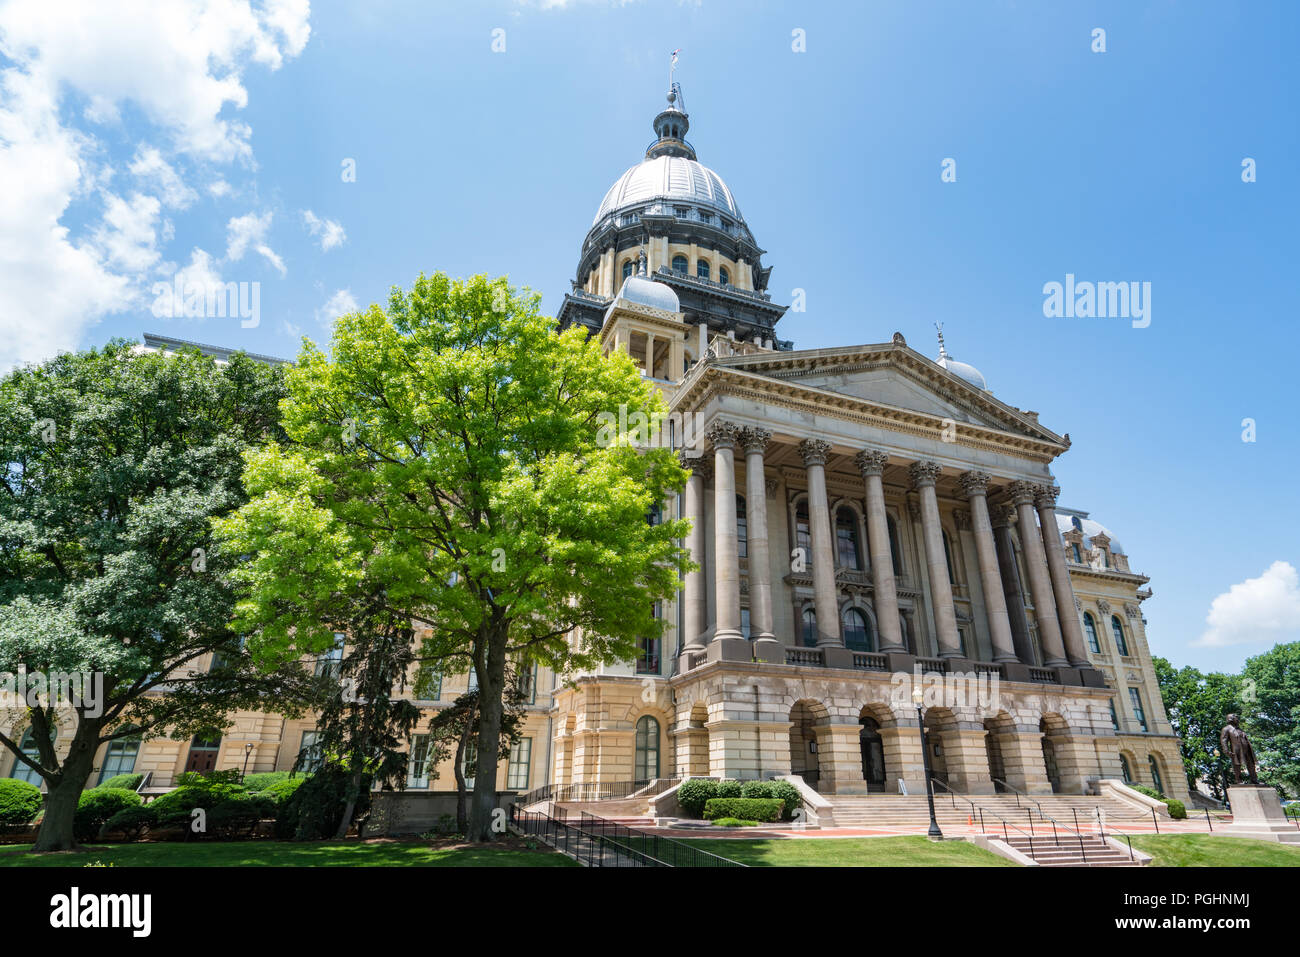 Illinois State Capital Building in Springfield, Illinois - Stock Image